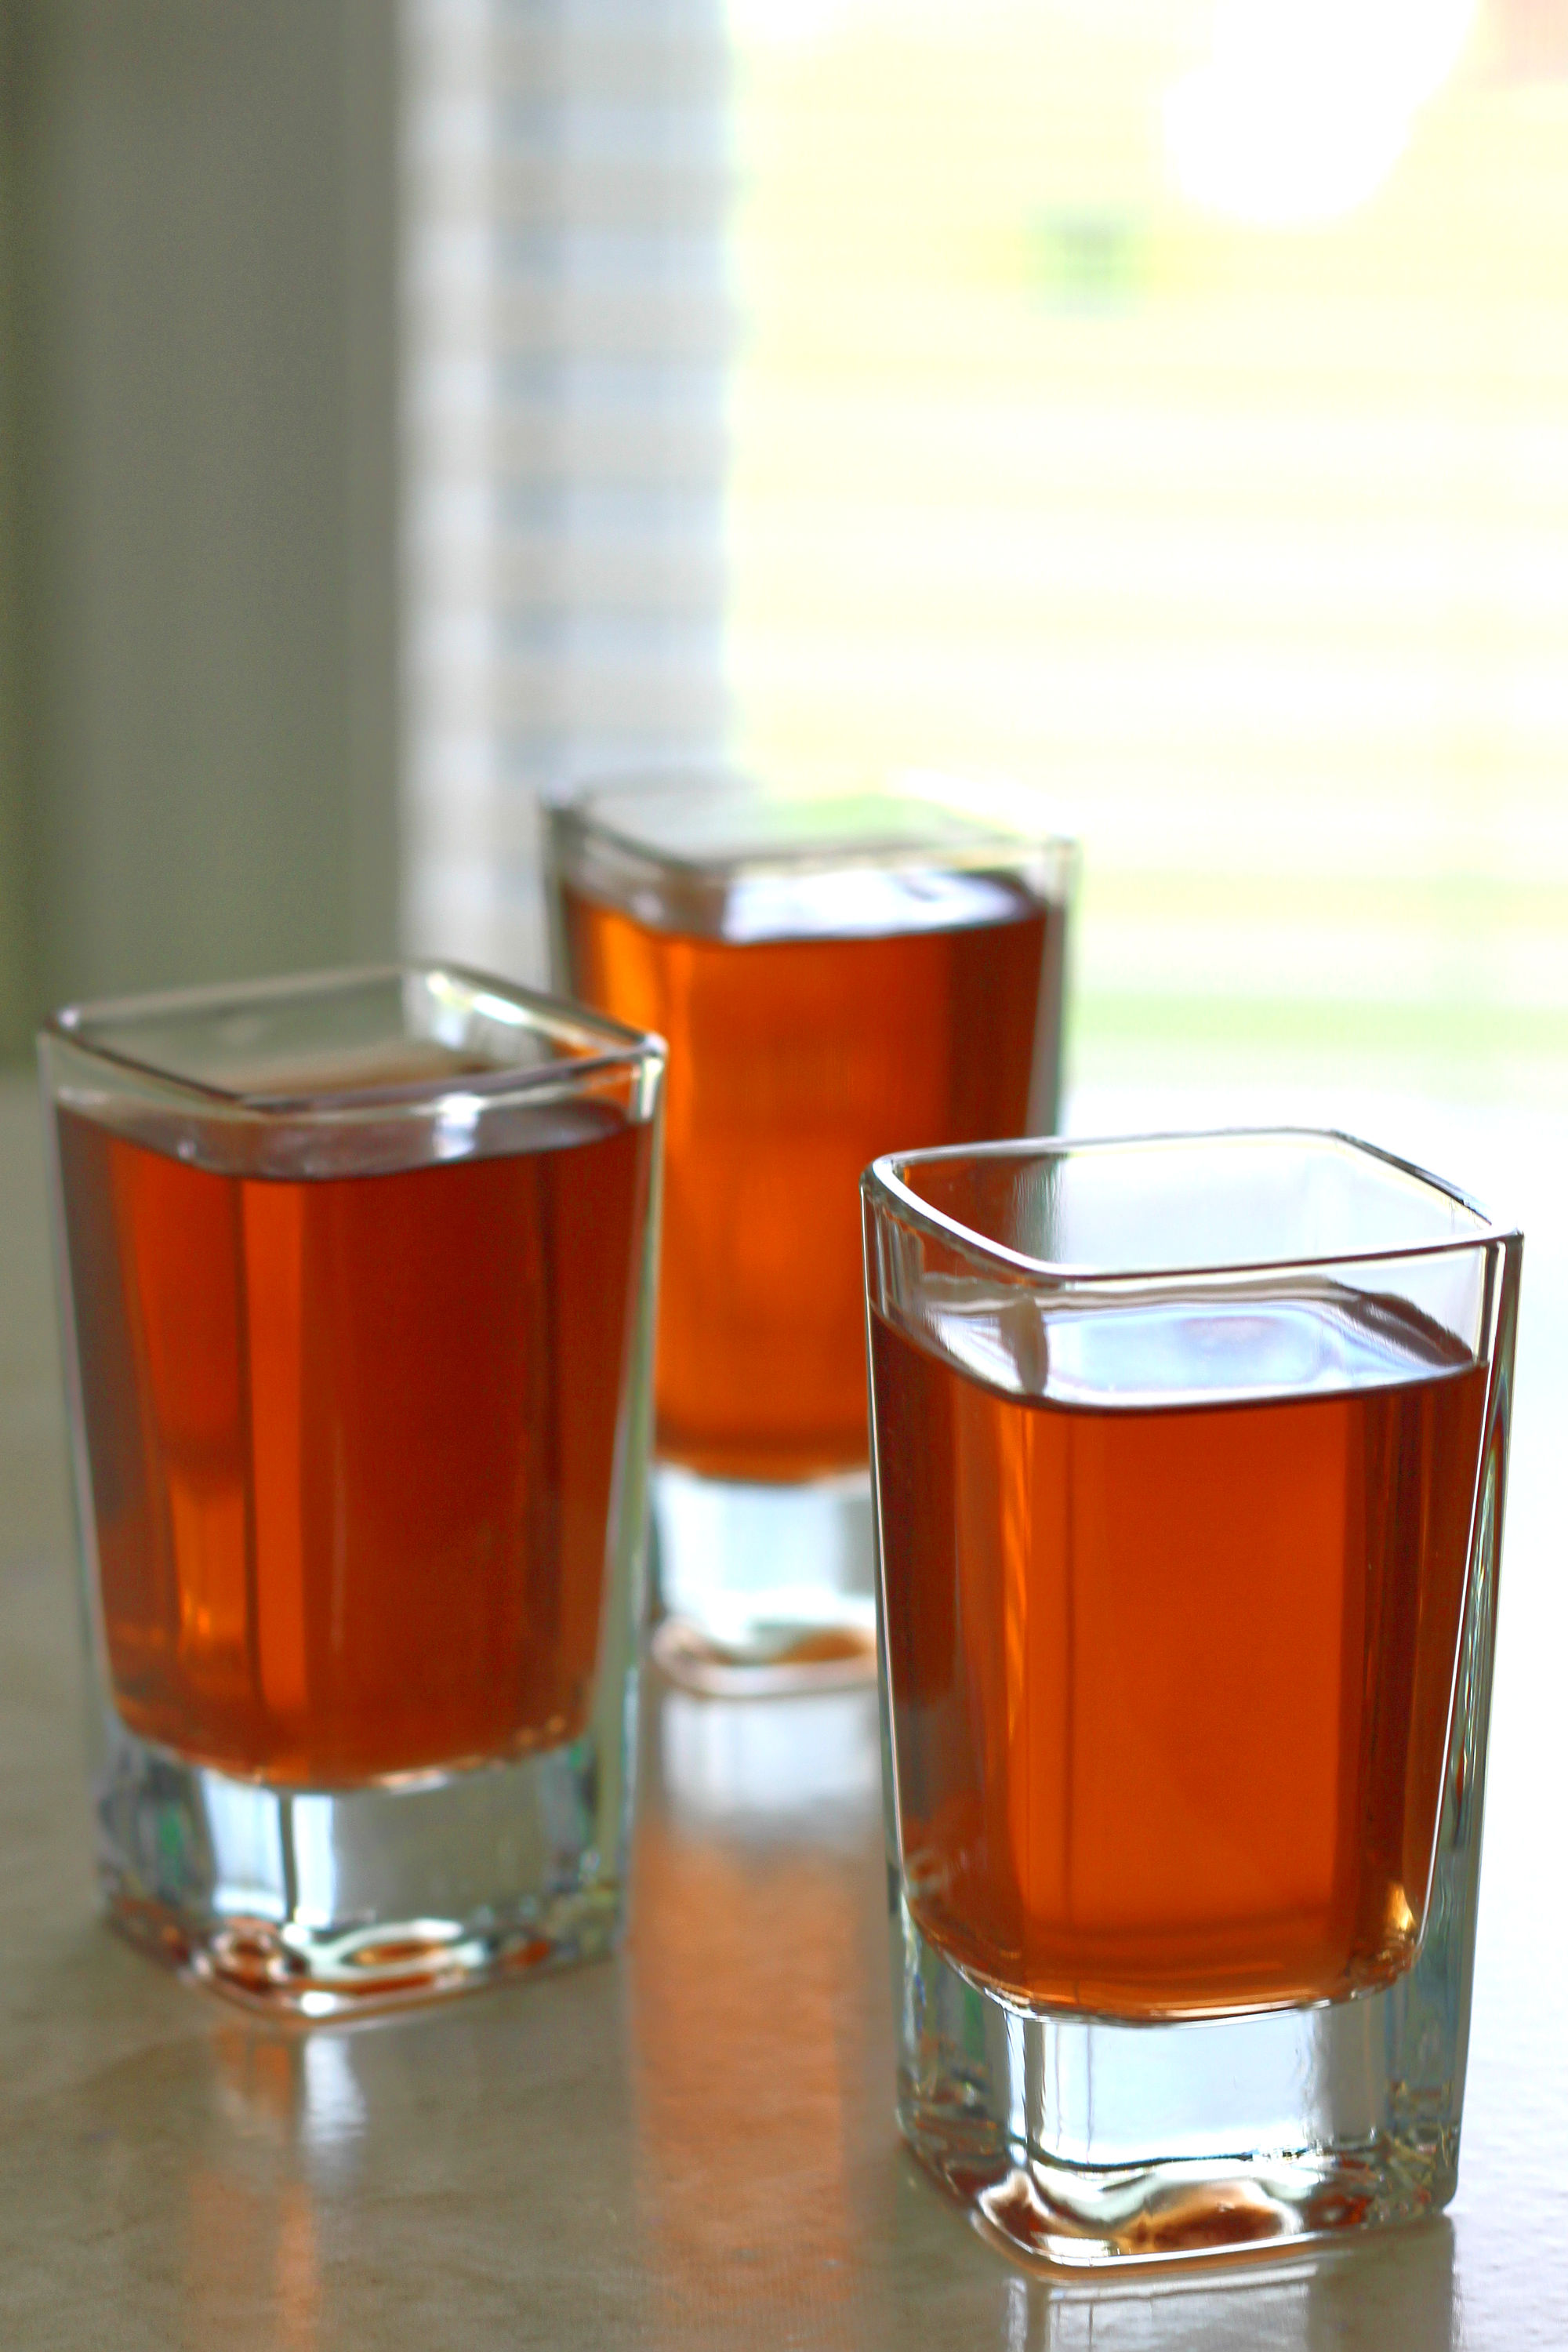 Three Kahlúa drinks in shot glasses on table